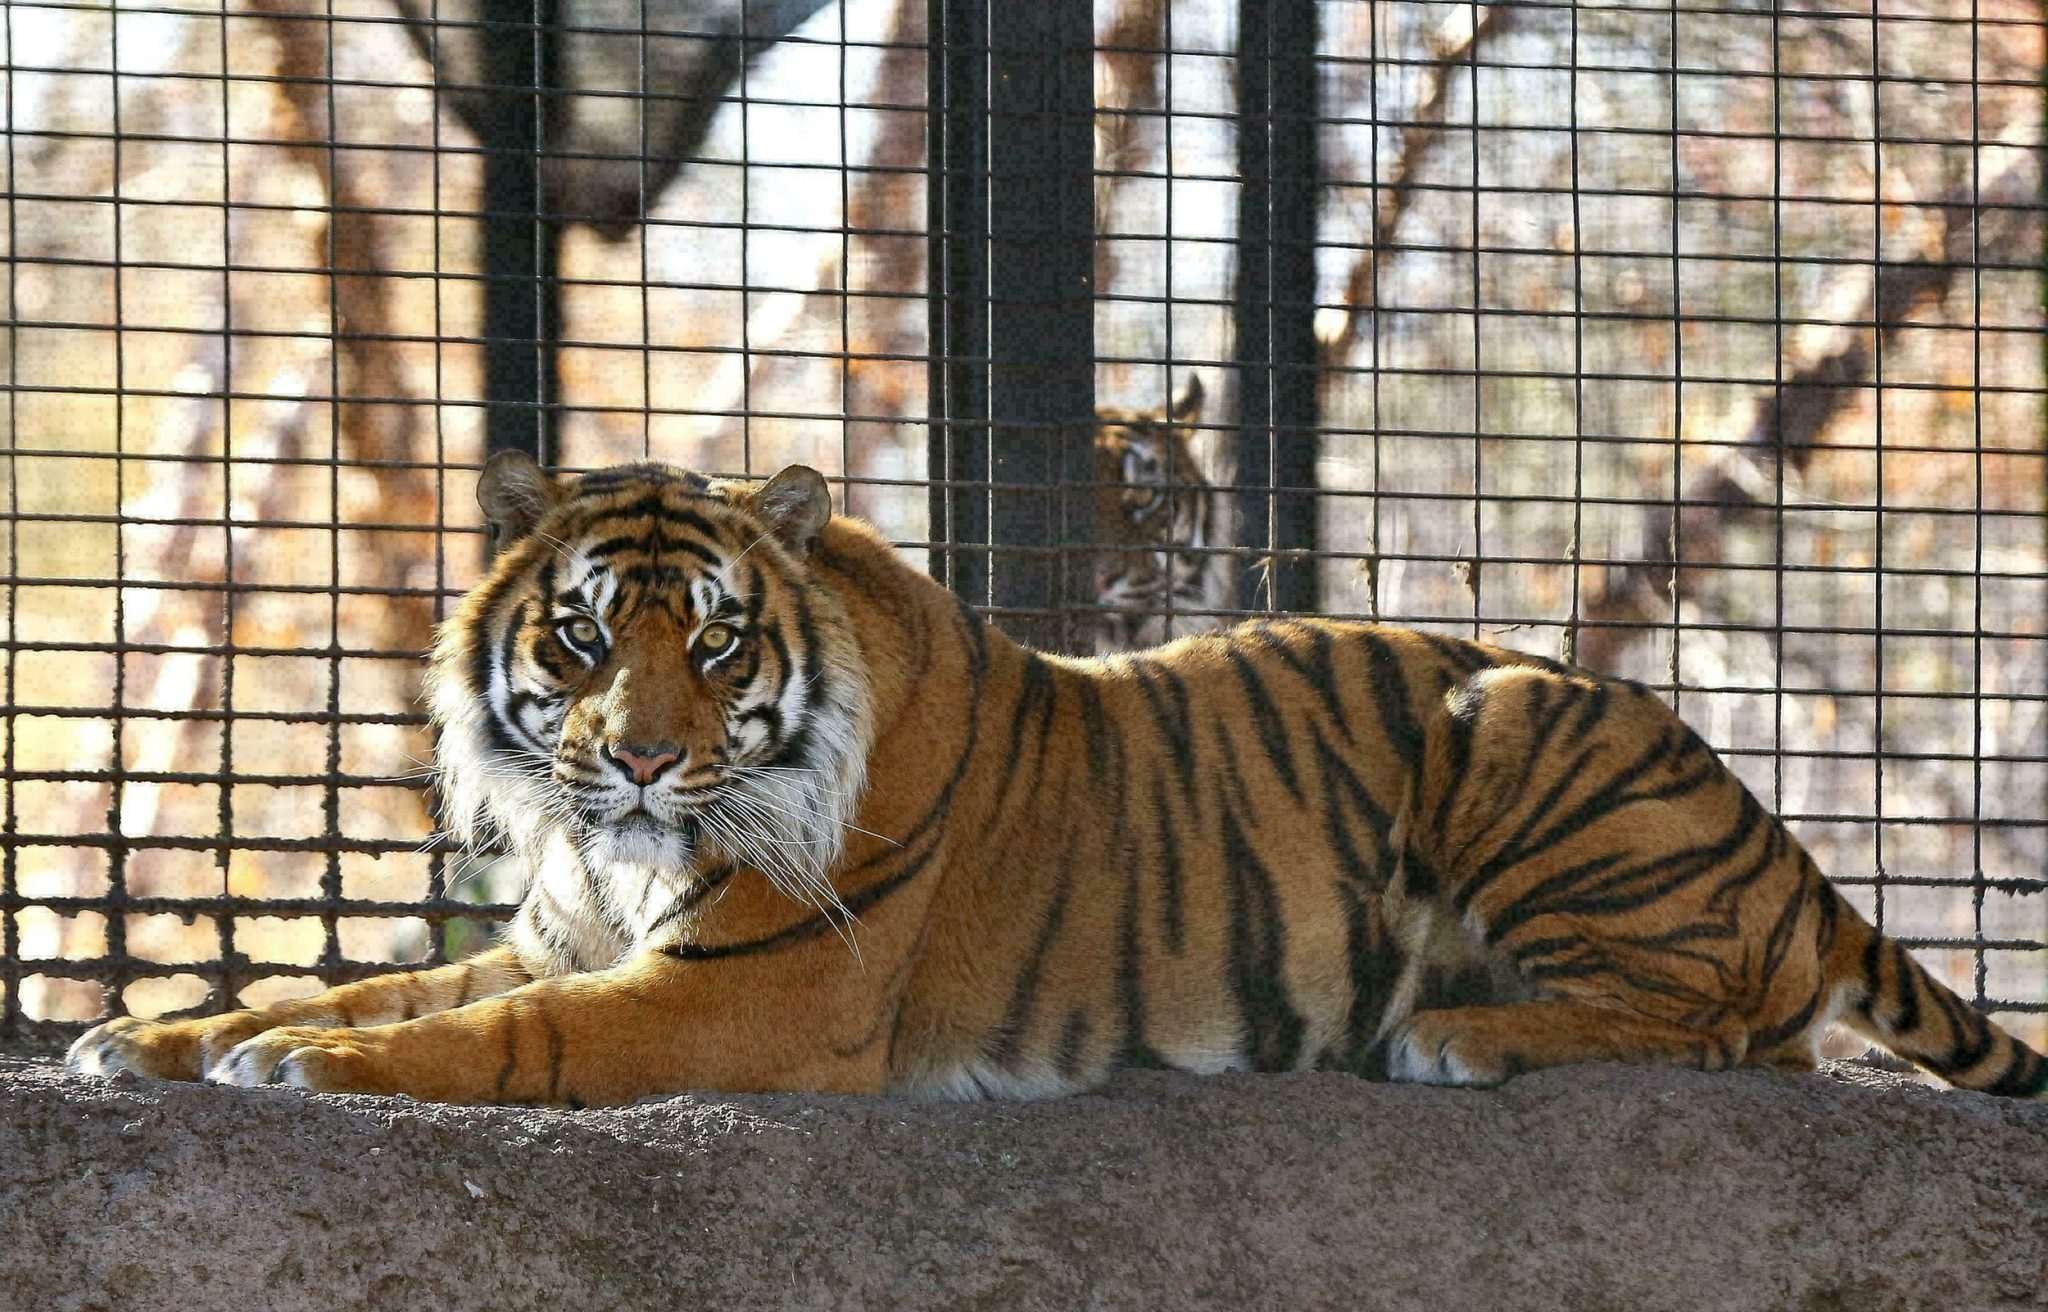 Topeka Zoo: Protocols weren't followed before tiger attack